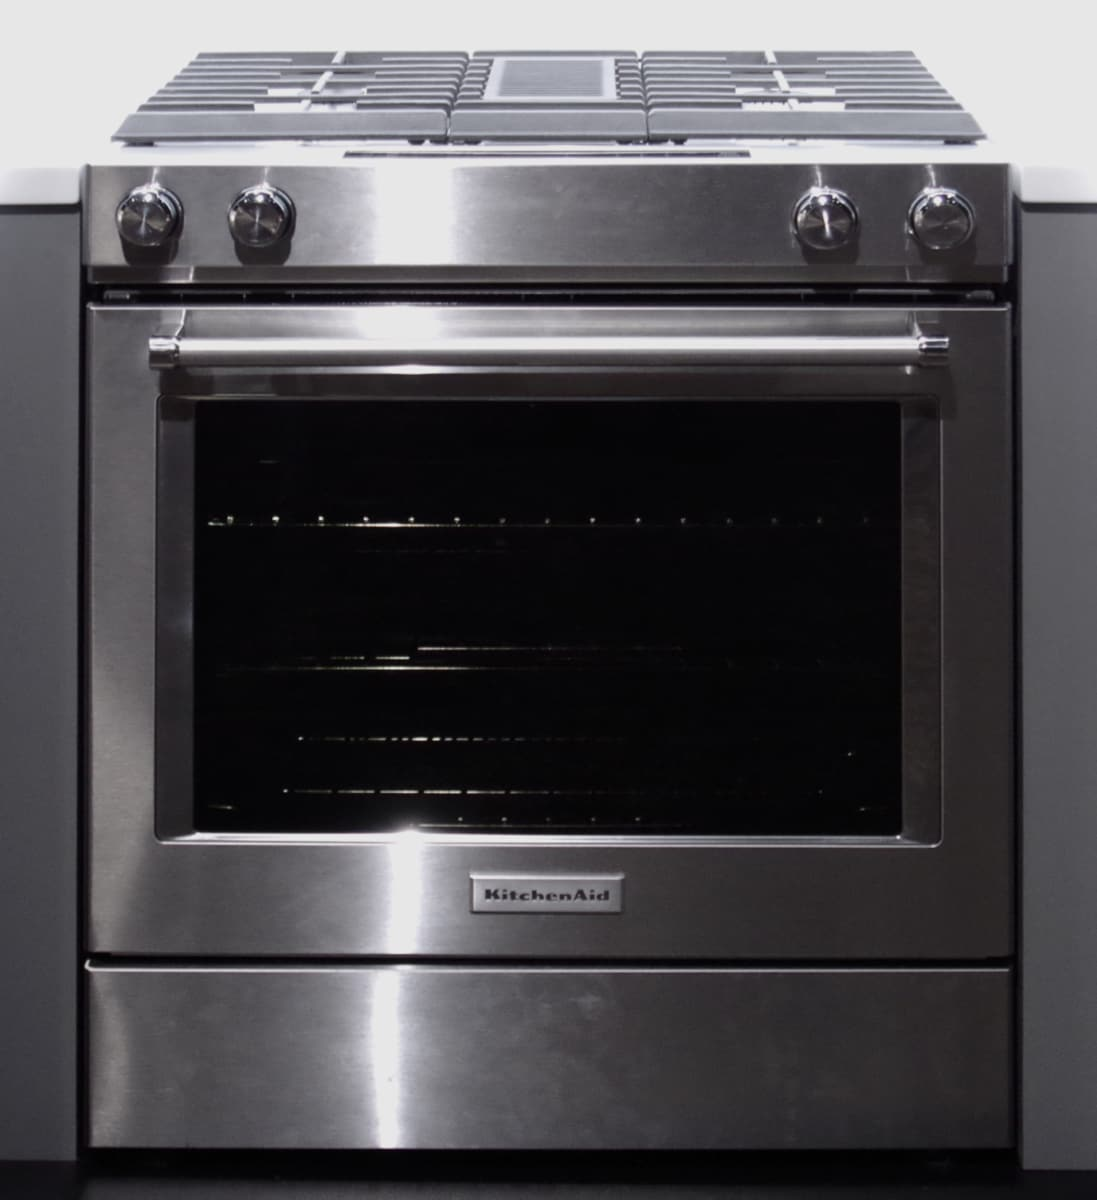 No Vent Required KitchenAid Offers New Downdraft Ranges Reviewed